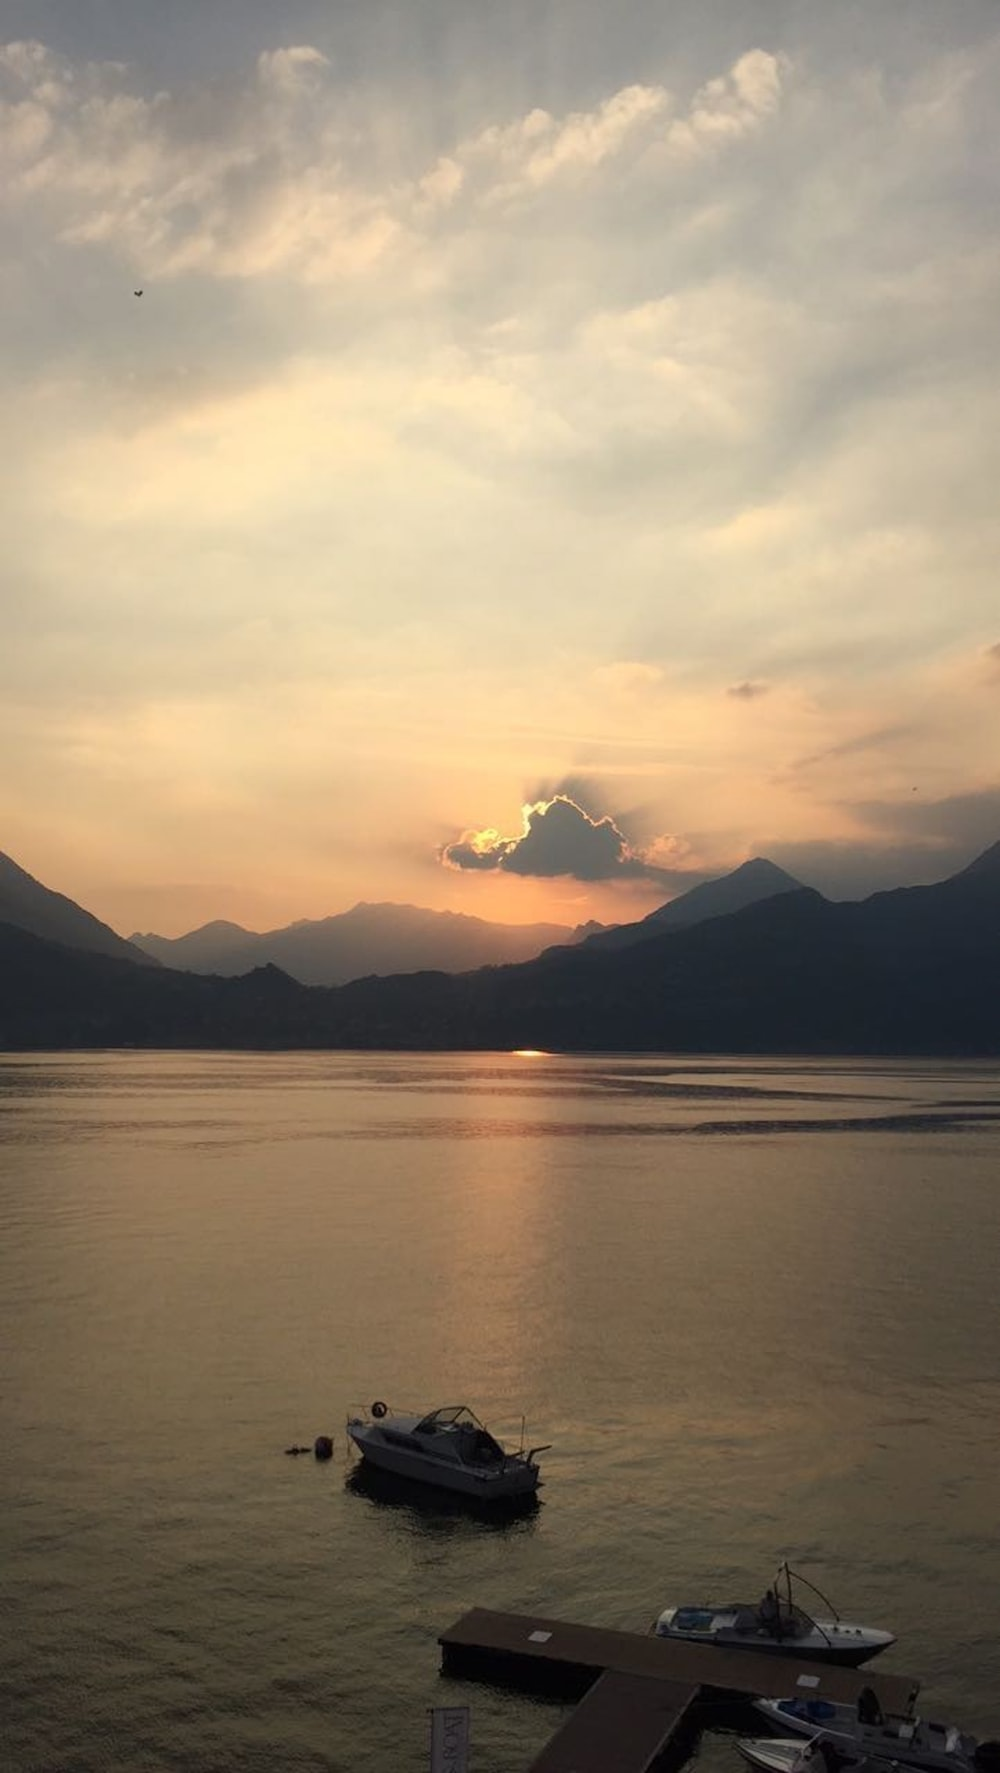 silhouette of mountains near body of water during sunset